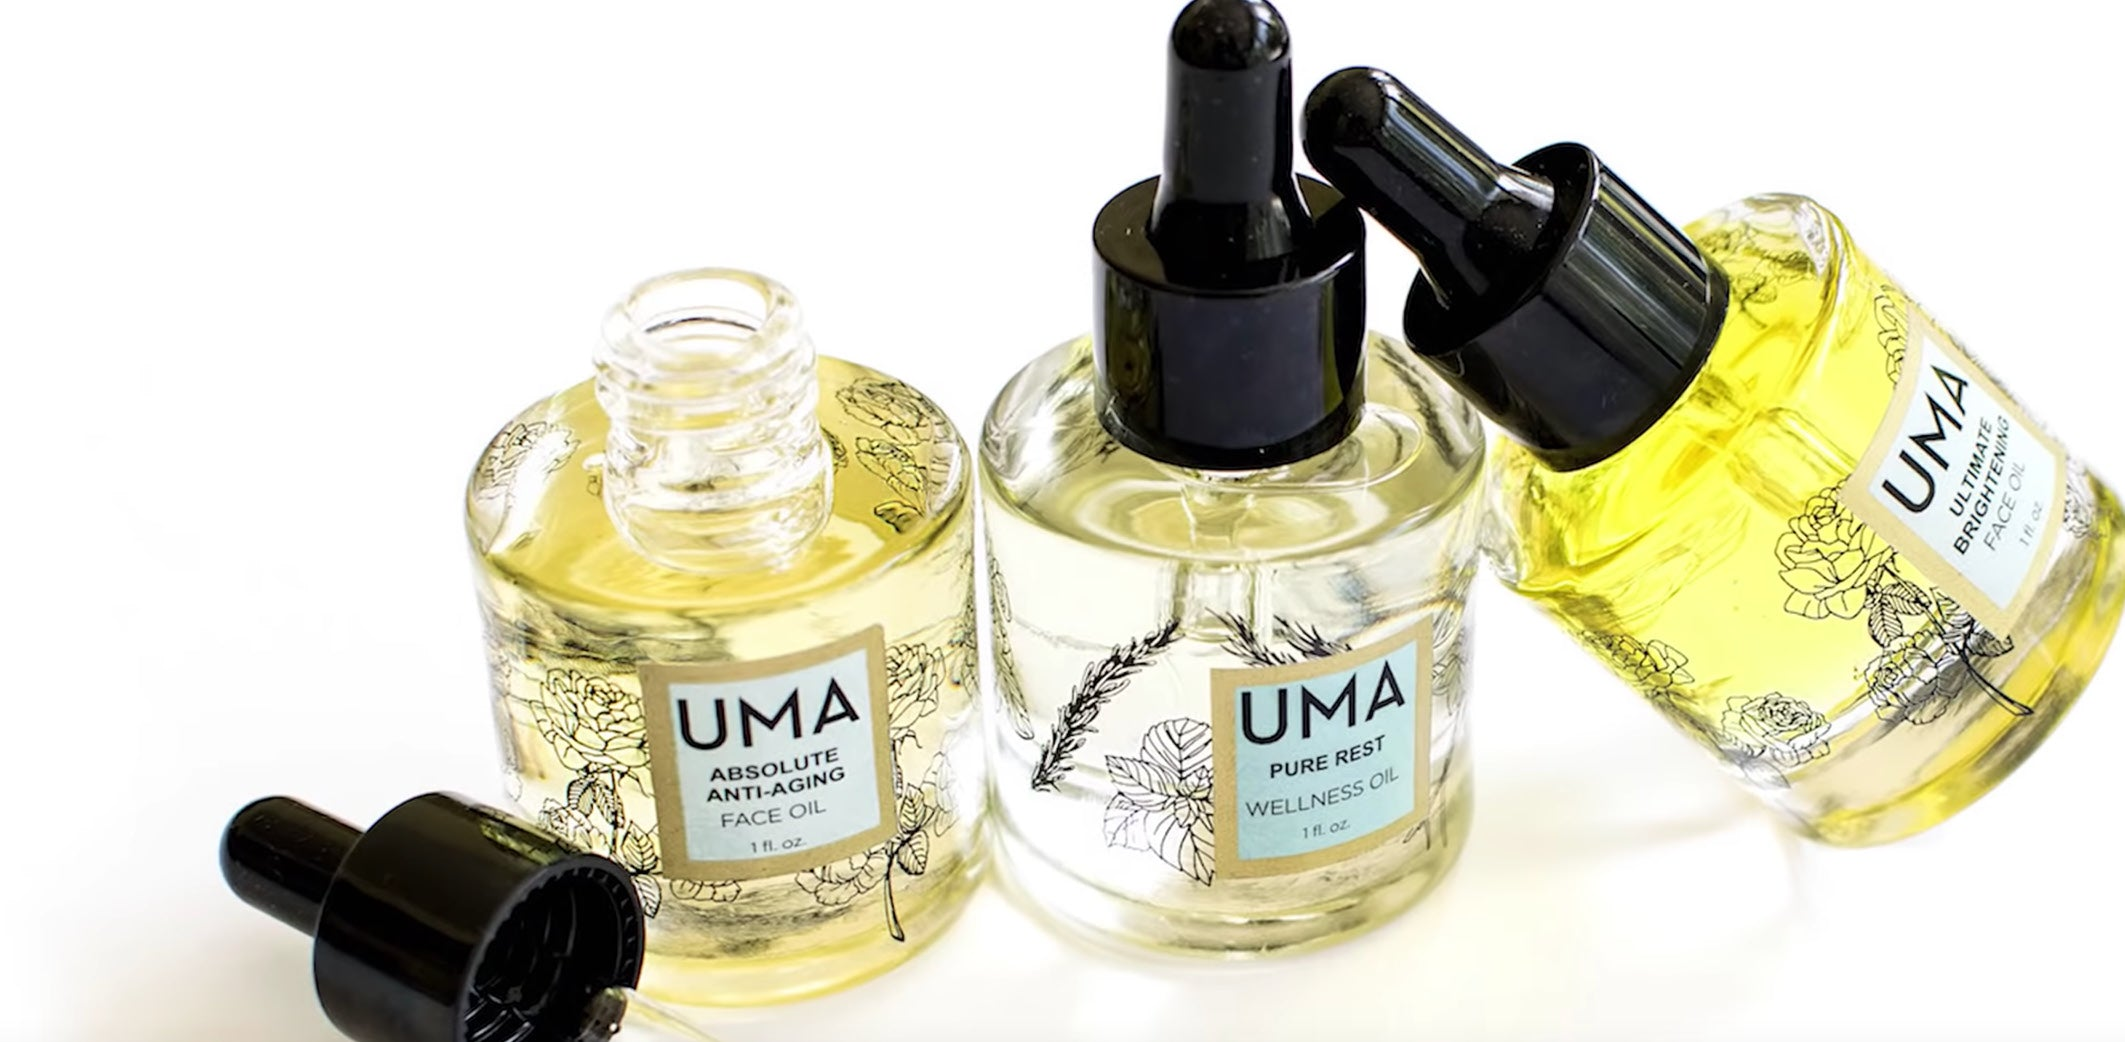 UMA-OILS-Organic-natural-ethical-vegan-green-beauty